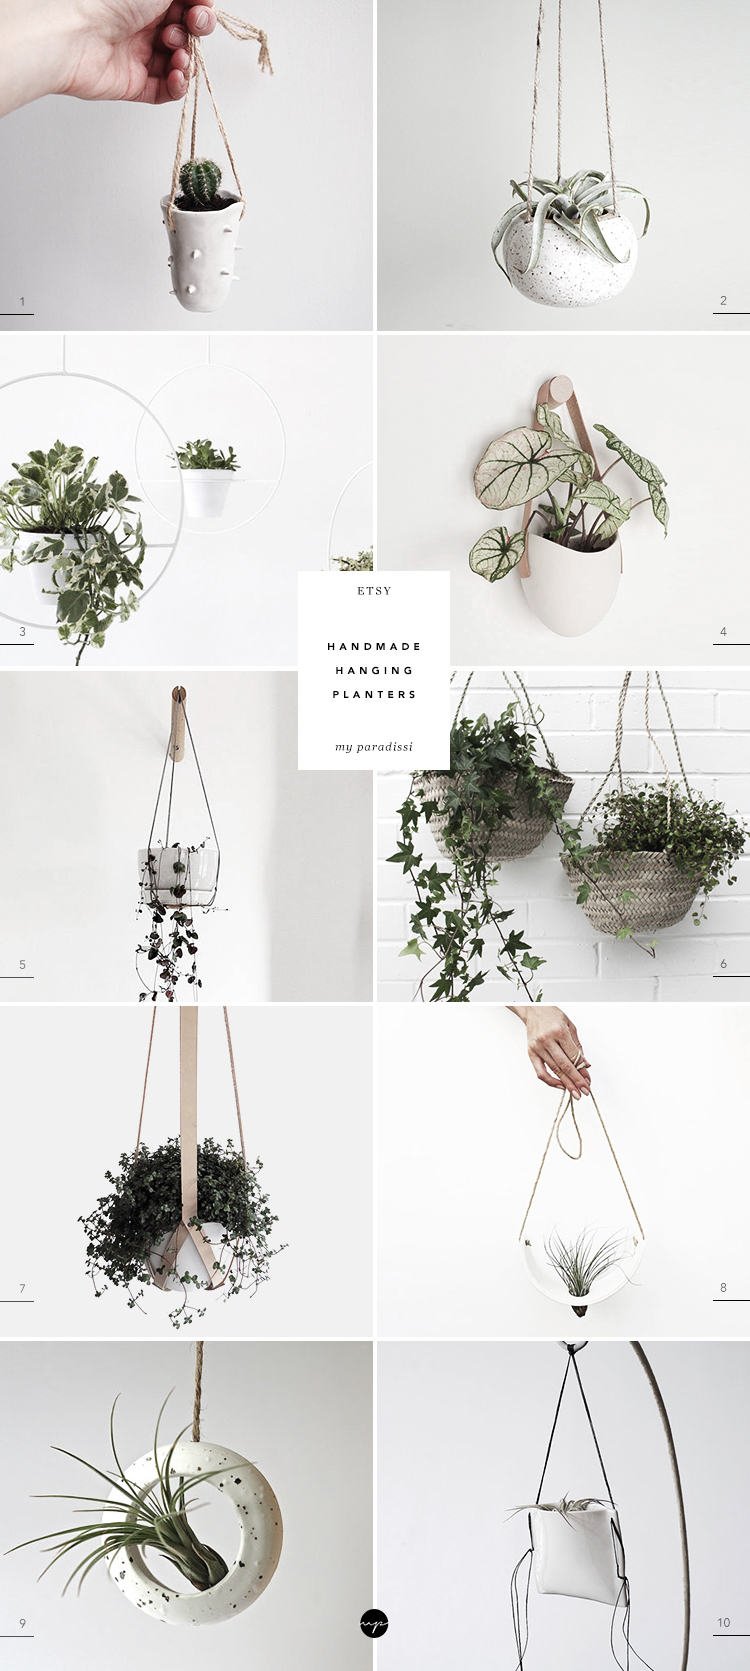 10 Best Handmade Hanging Planters from Etsy | Handmade hanging planters, minimalistic hanging planters, ceramic hanging planter, leather strap hanging planter, air plant cradle, contemporary hanging planter